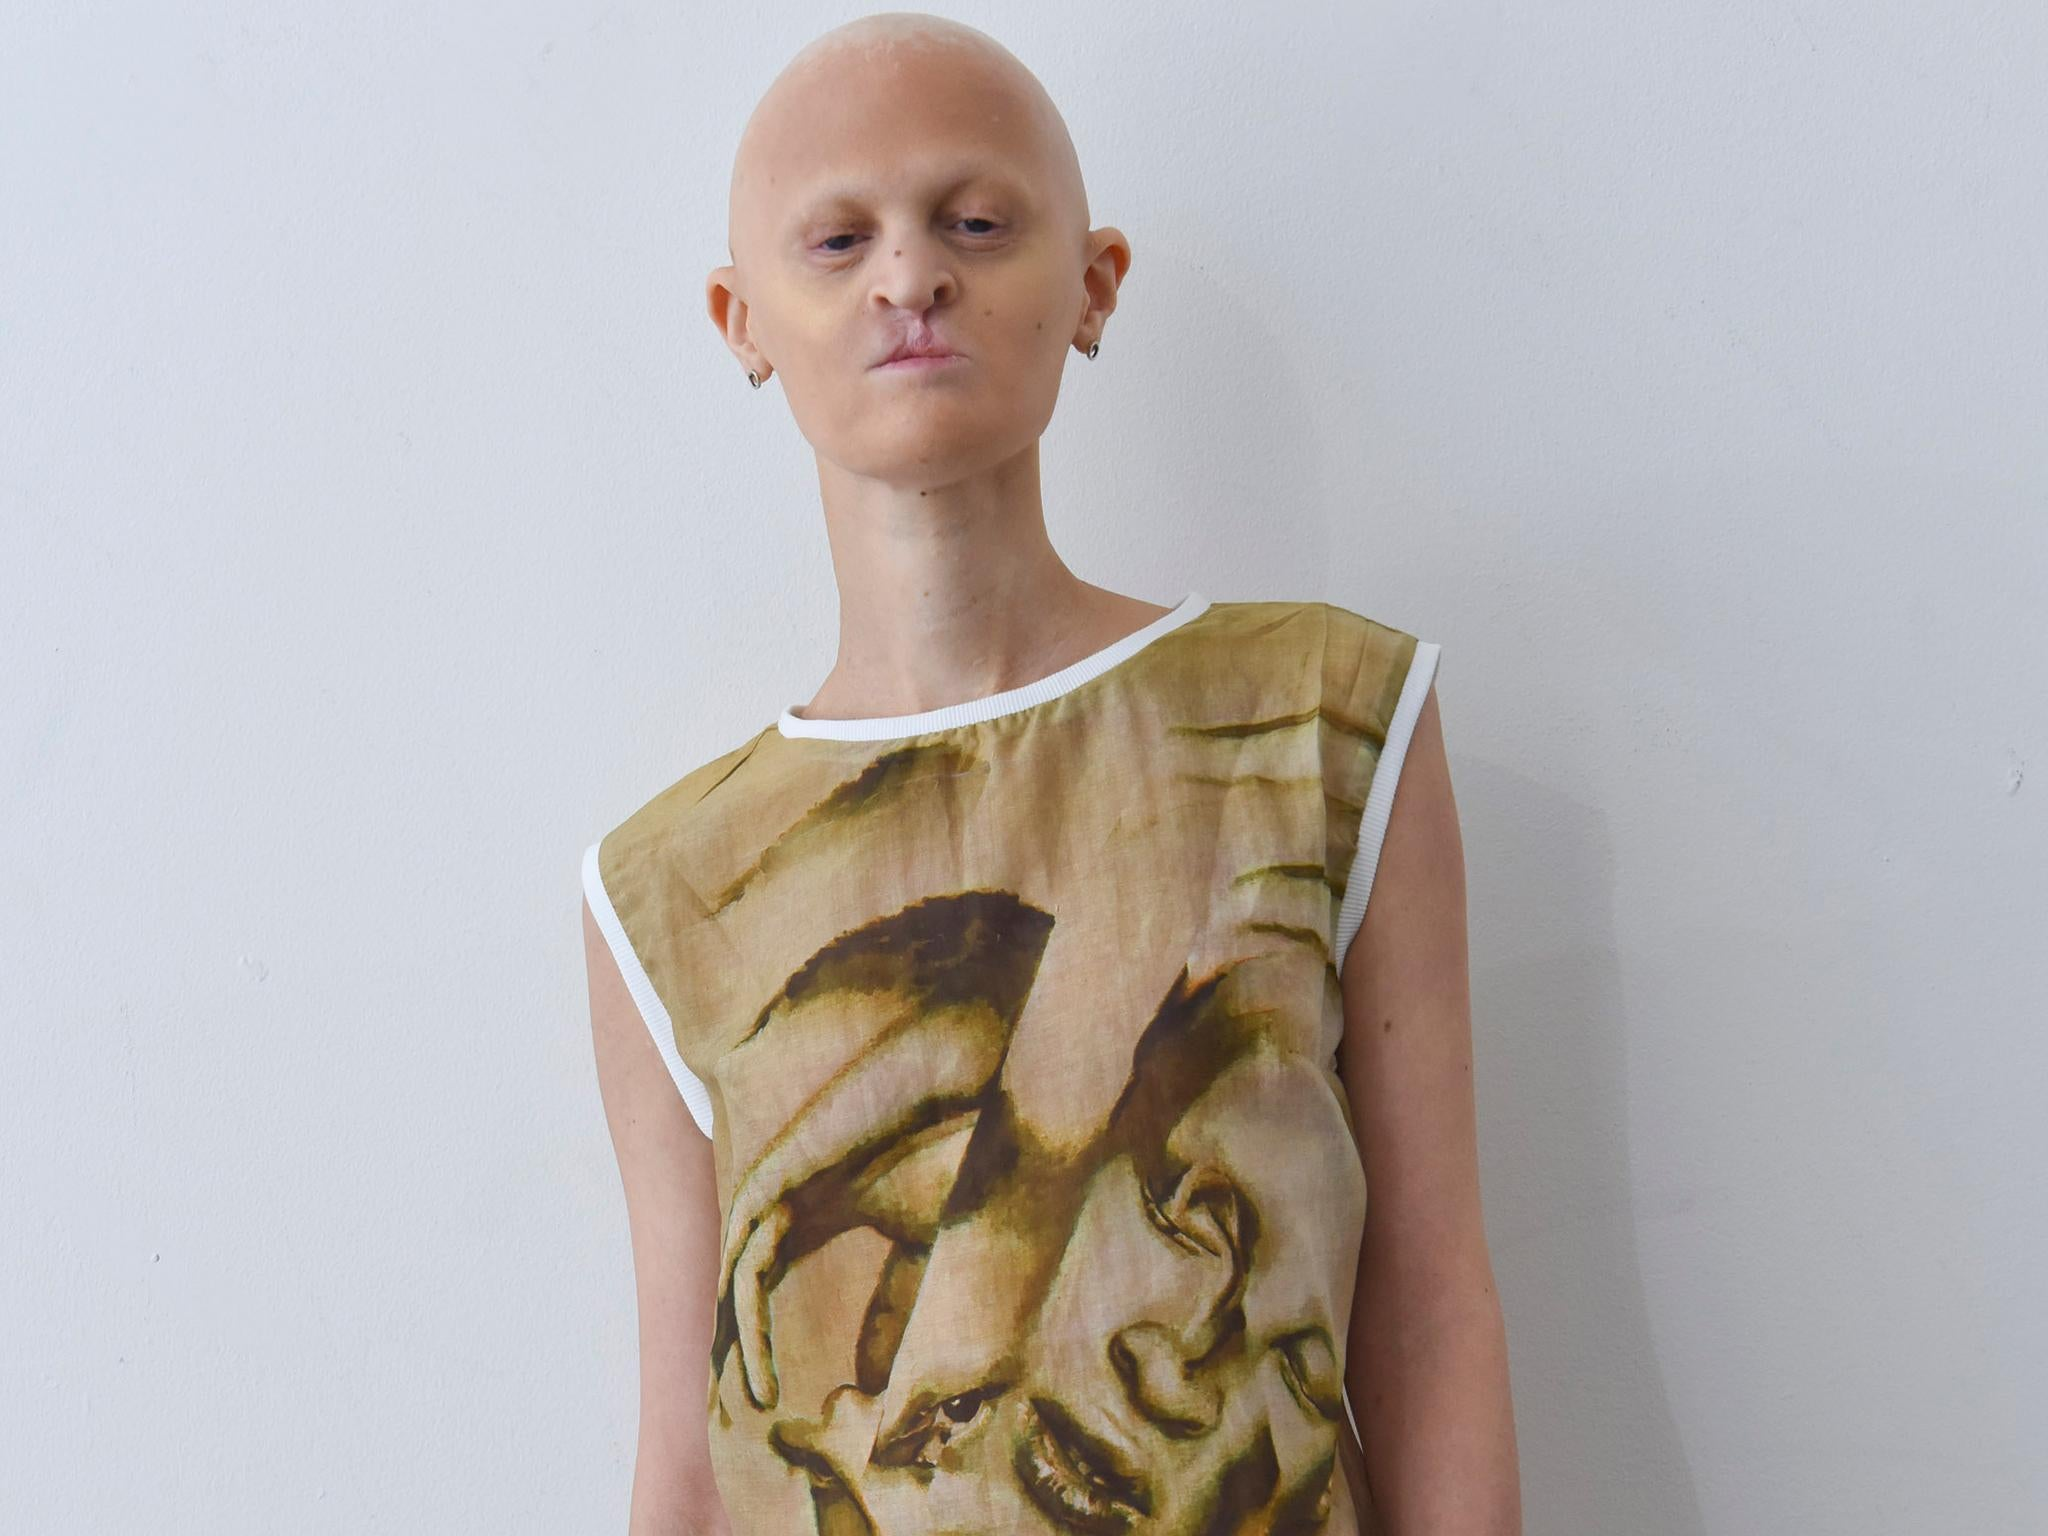 Model Melanie Gaydos Has a Rare Genetic Disorder — and Shes Taking Over the Fashion World